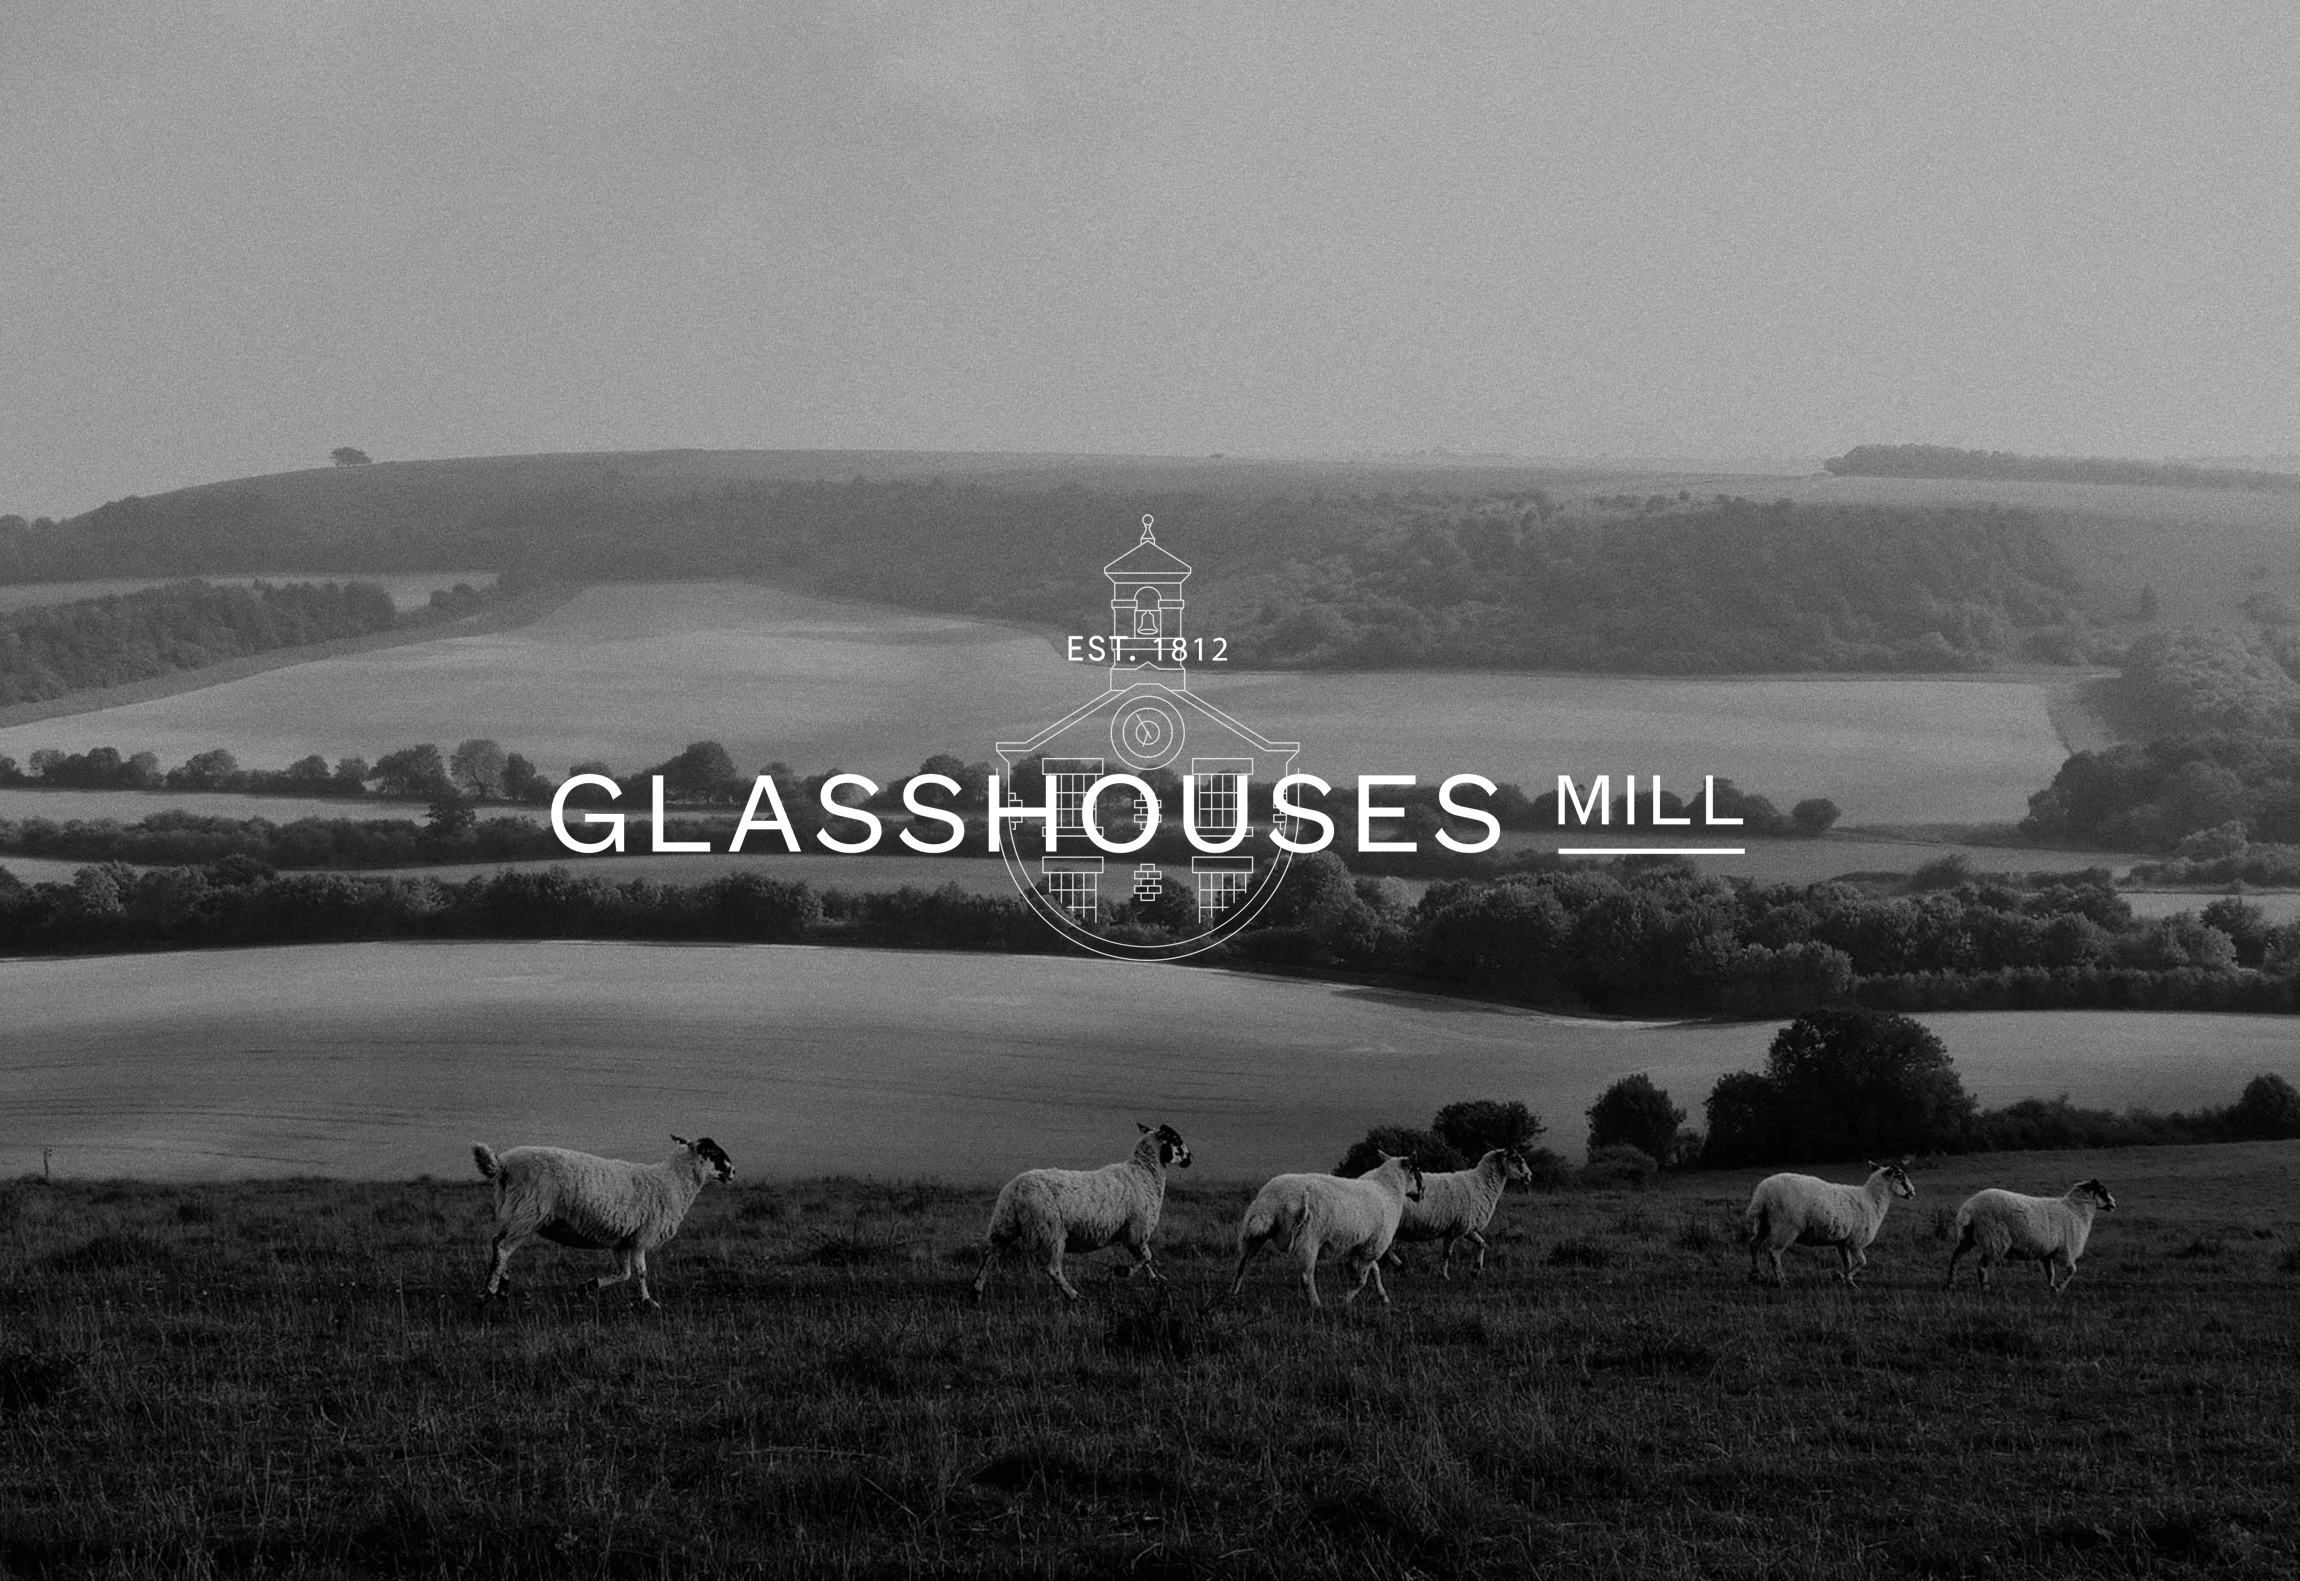 glasshousesmill-min